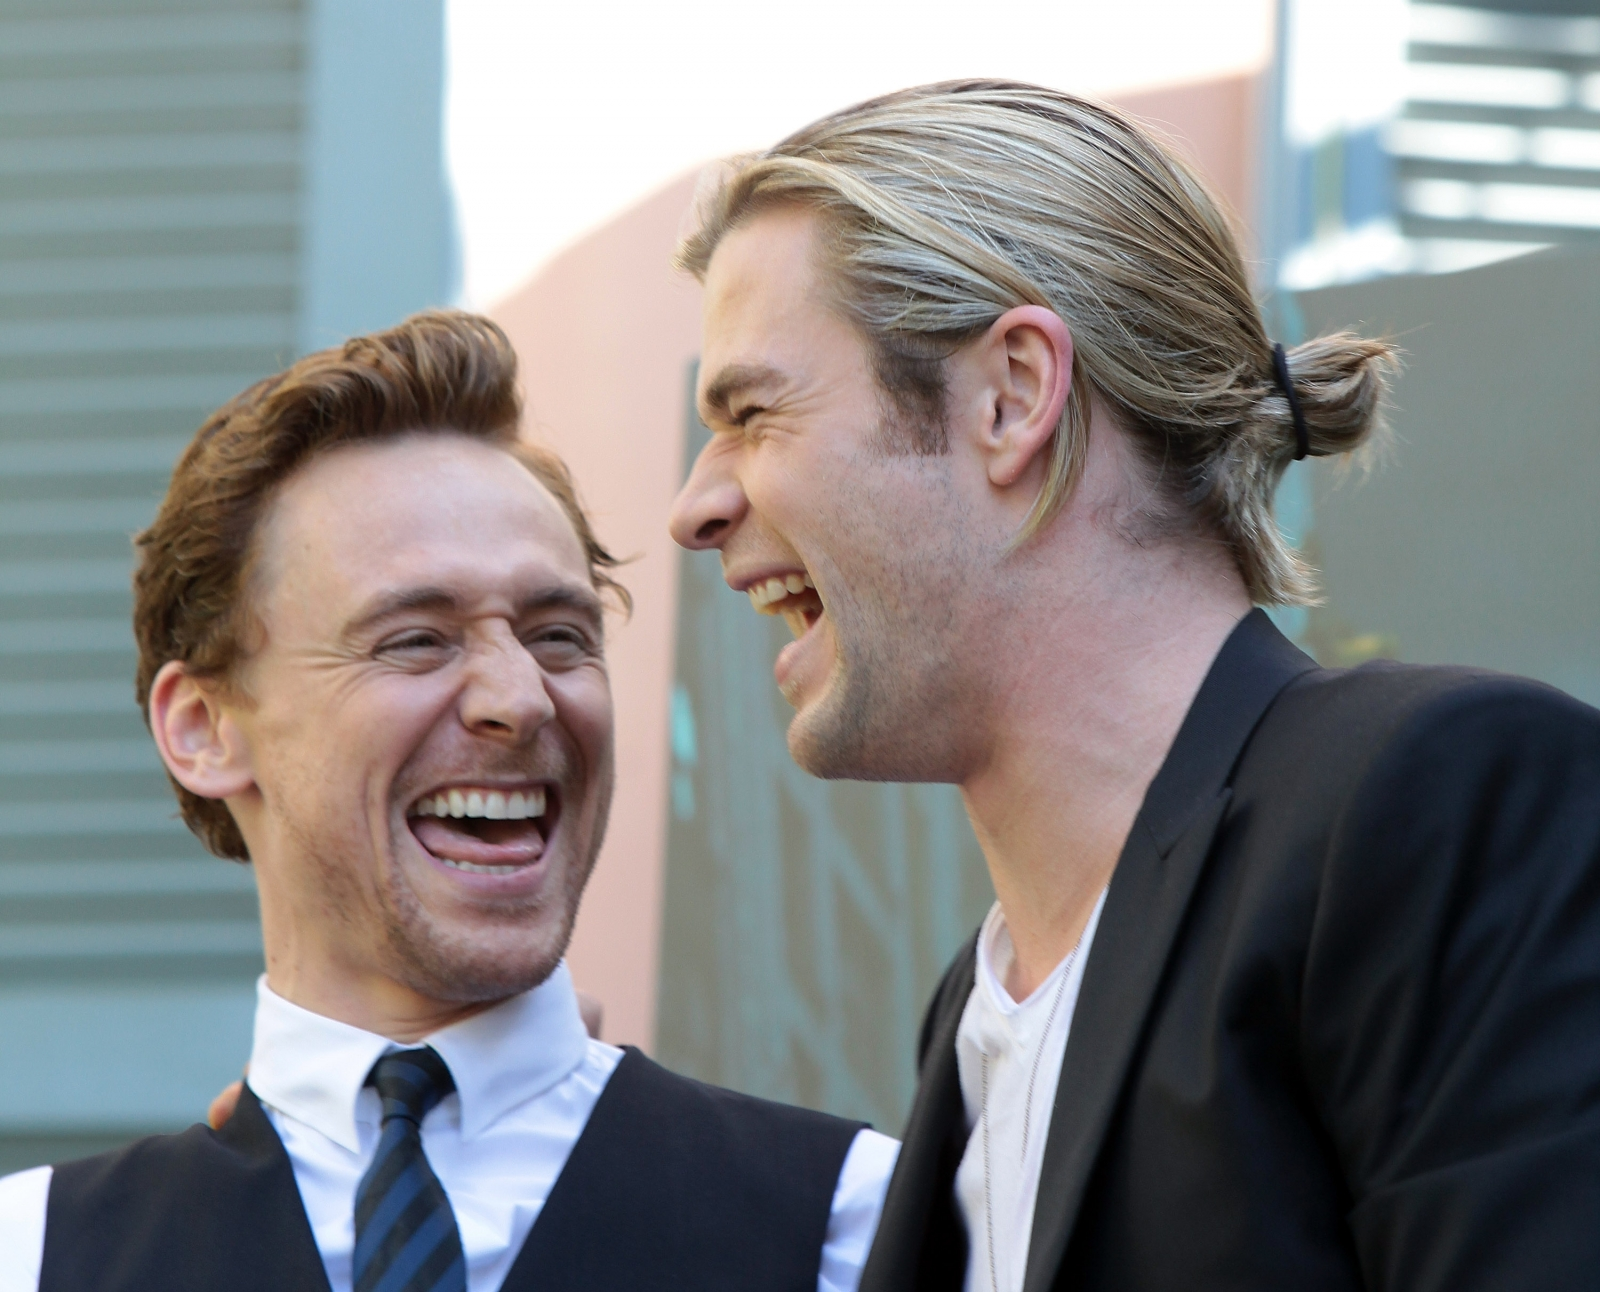 Chris Hemsworth and Tom Hiddleston delight fans at children's hospital